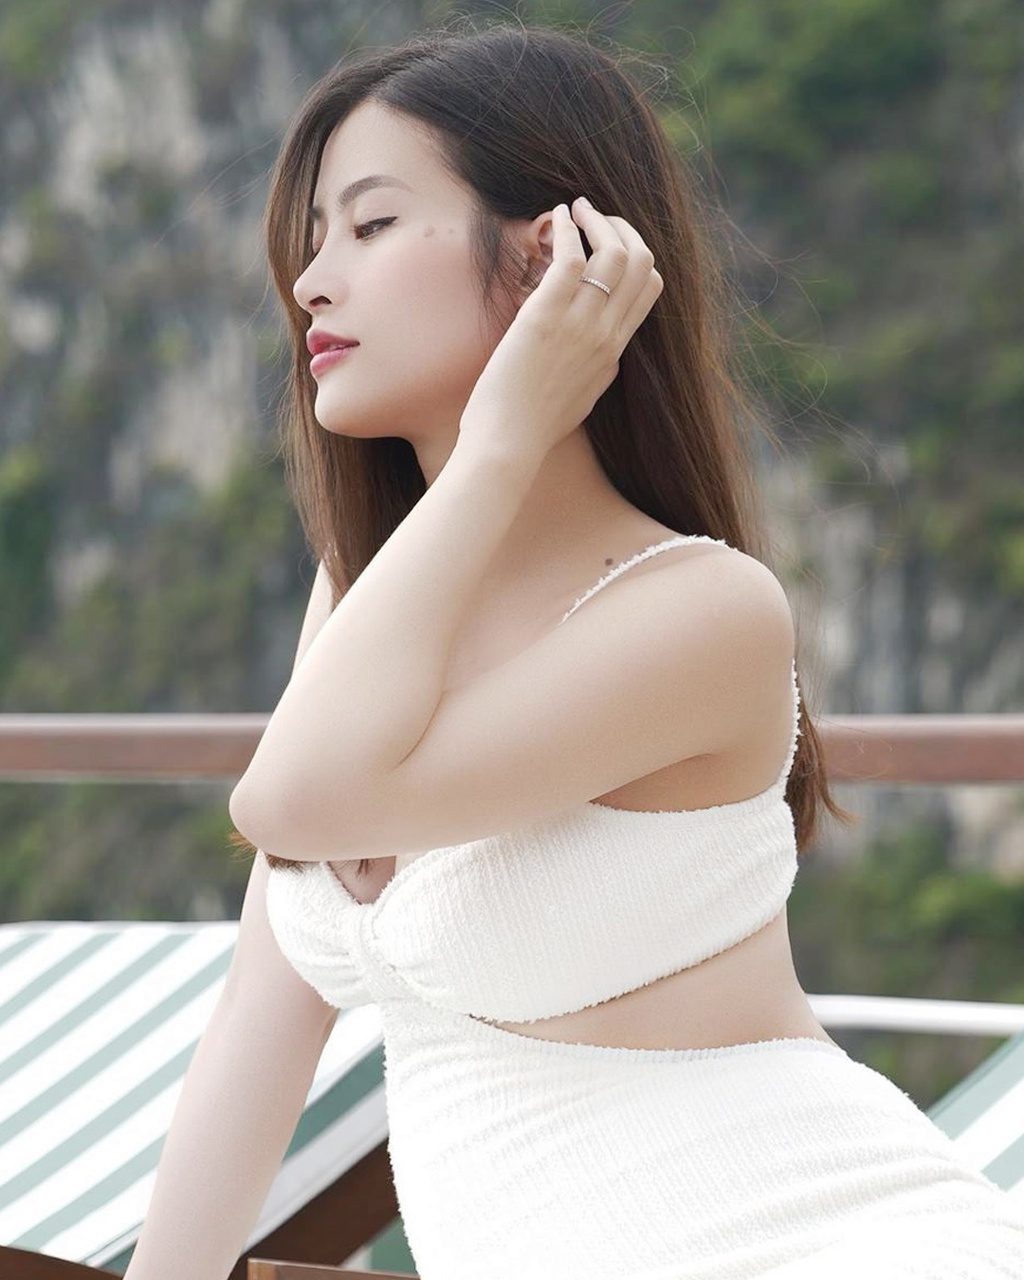 cach tap the duc khi mang thai anh 7